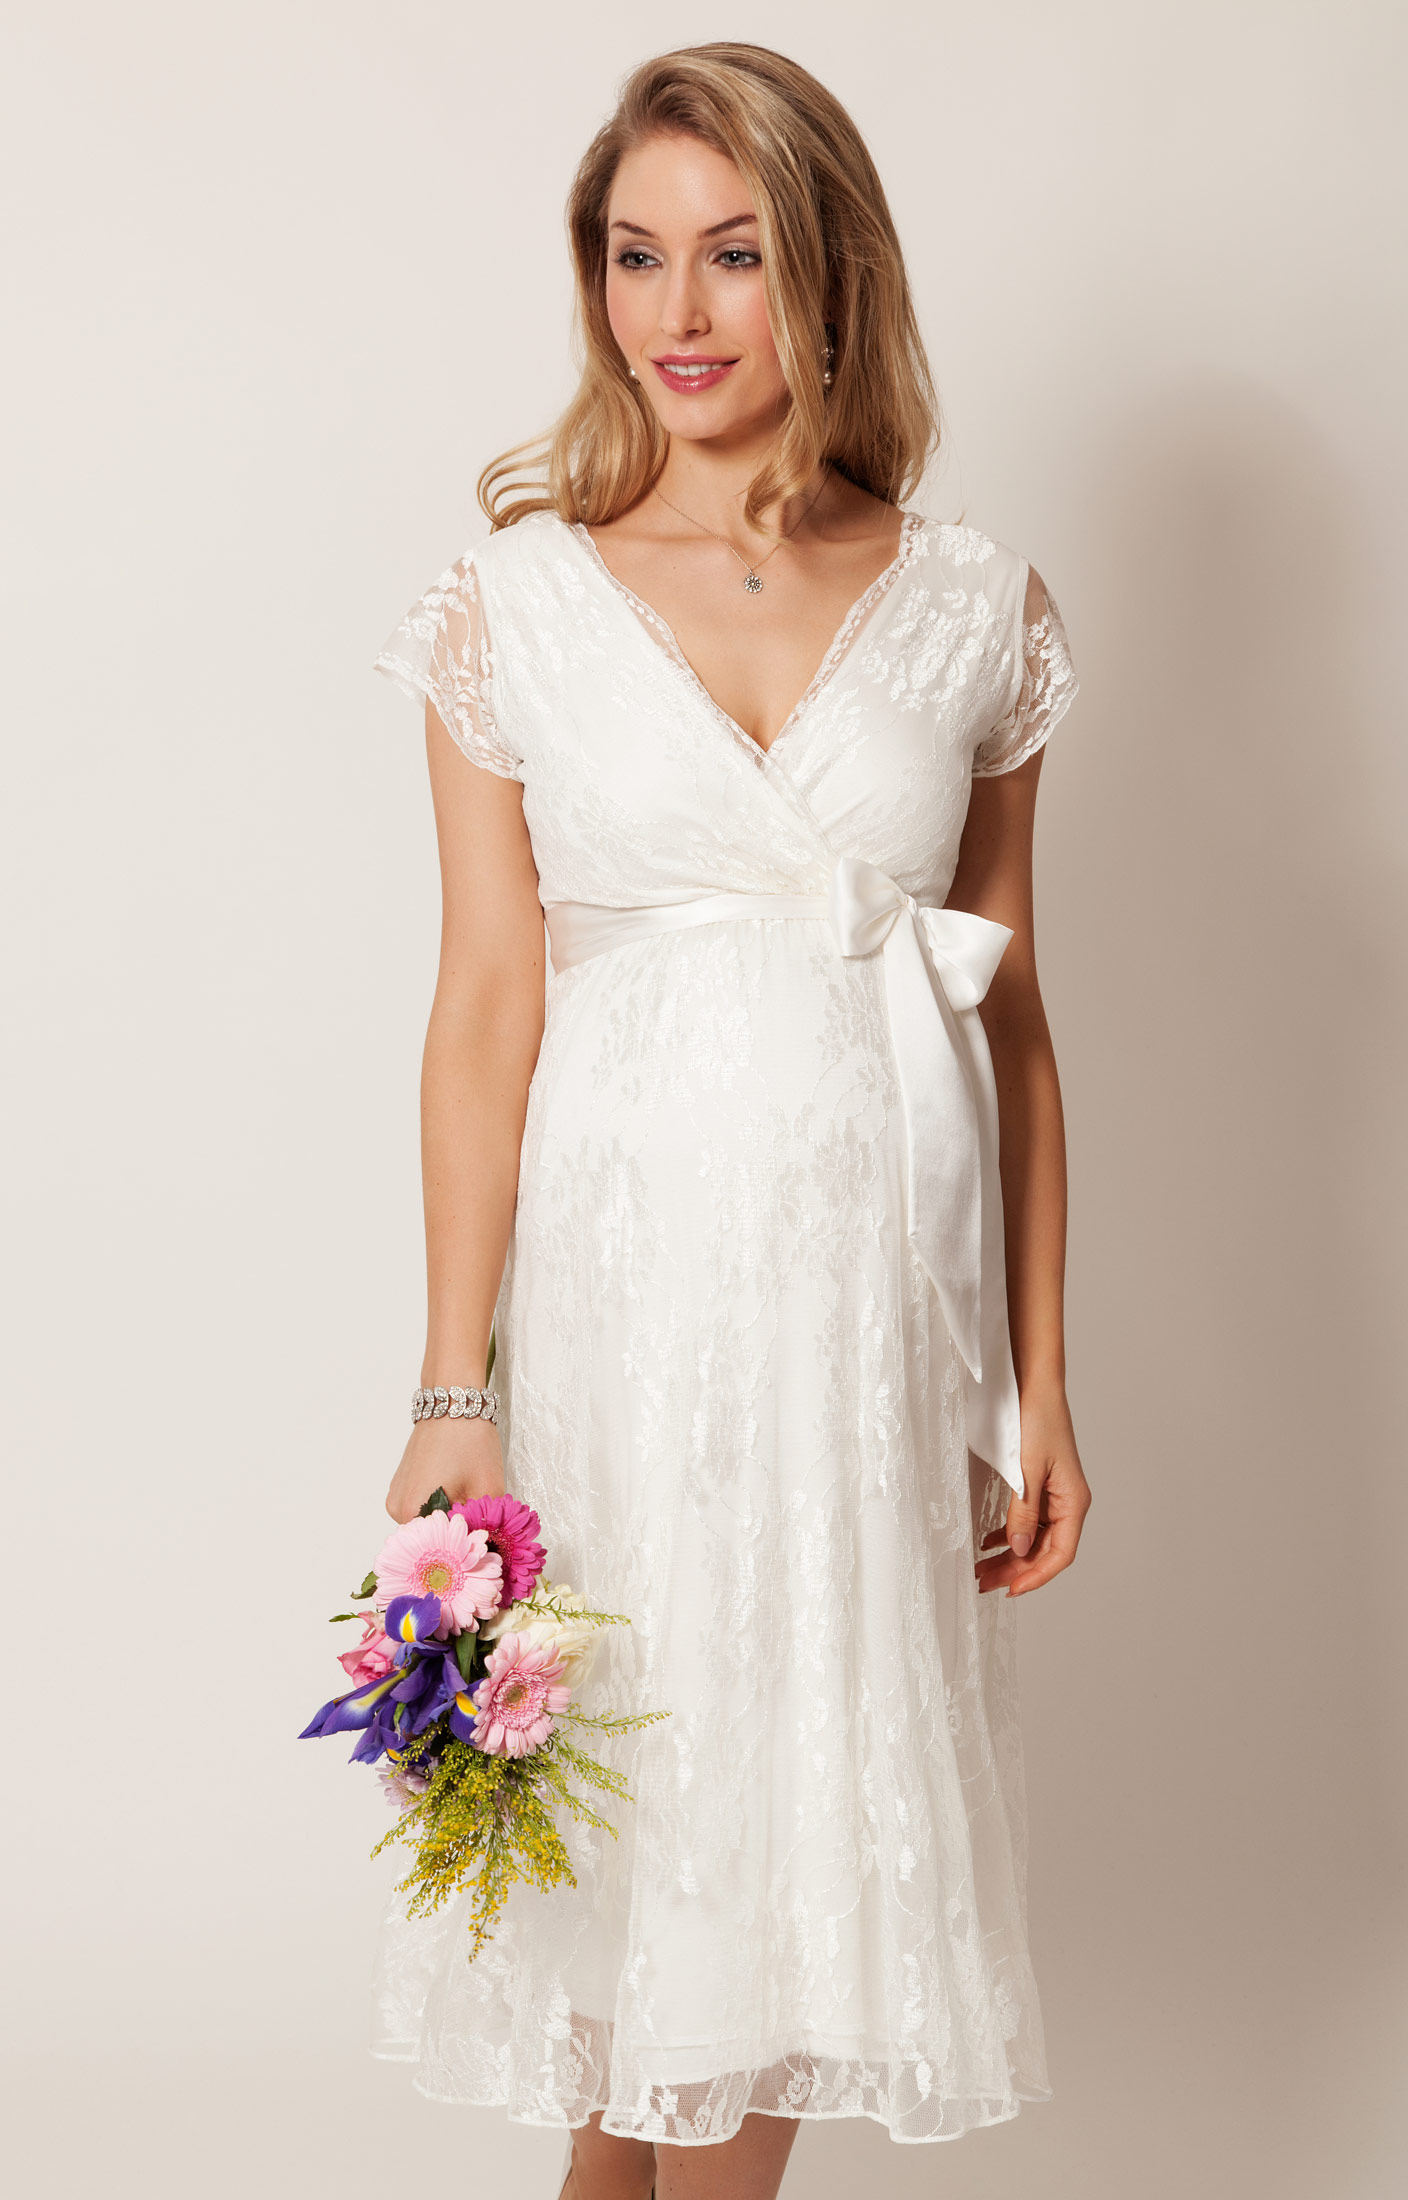 Eden Maternity Wedding Dress Ivory Dream) - Maternity Wedding ...